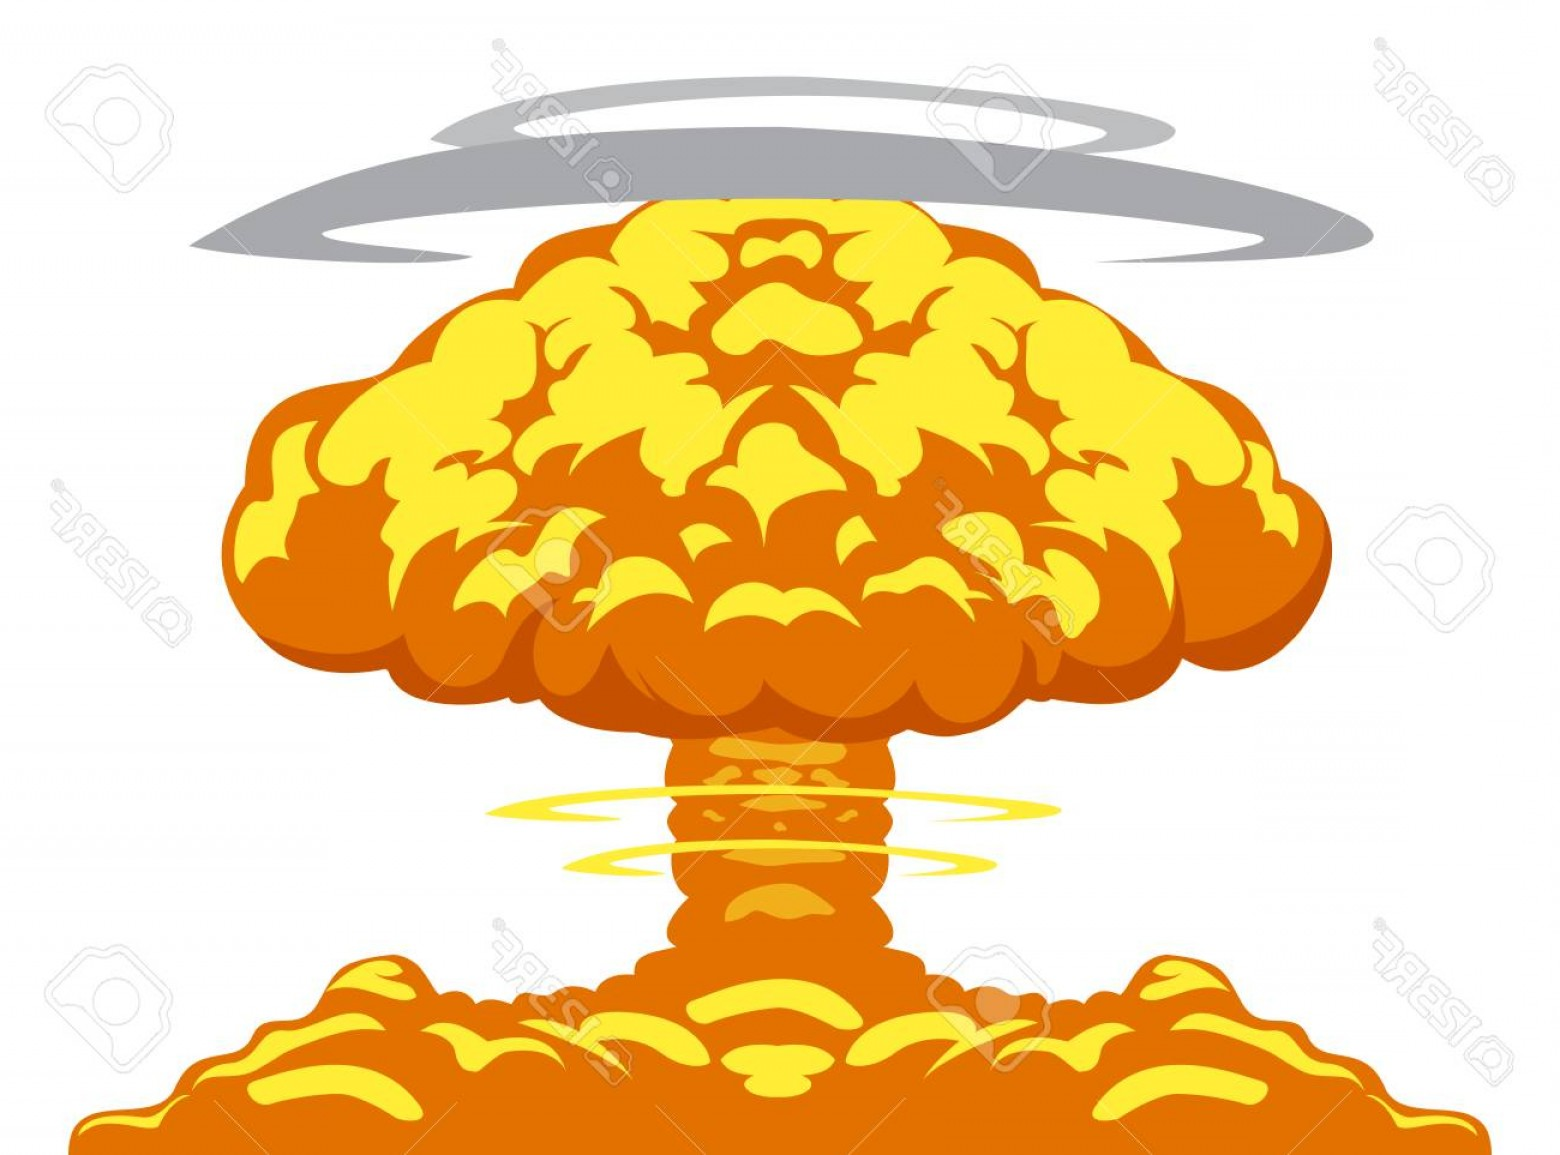 Atomic Bomb Explosion Vector: Photostock Vector Easy Image Of Detonation And Atom Bomb Explosion On The World